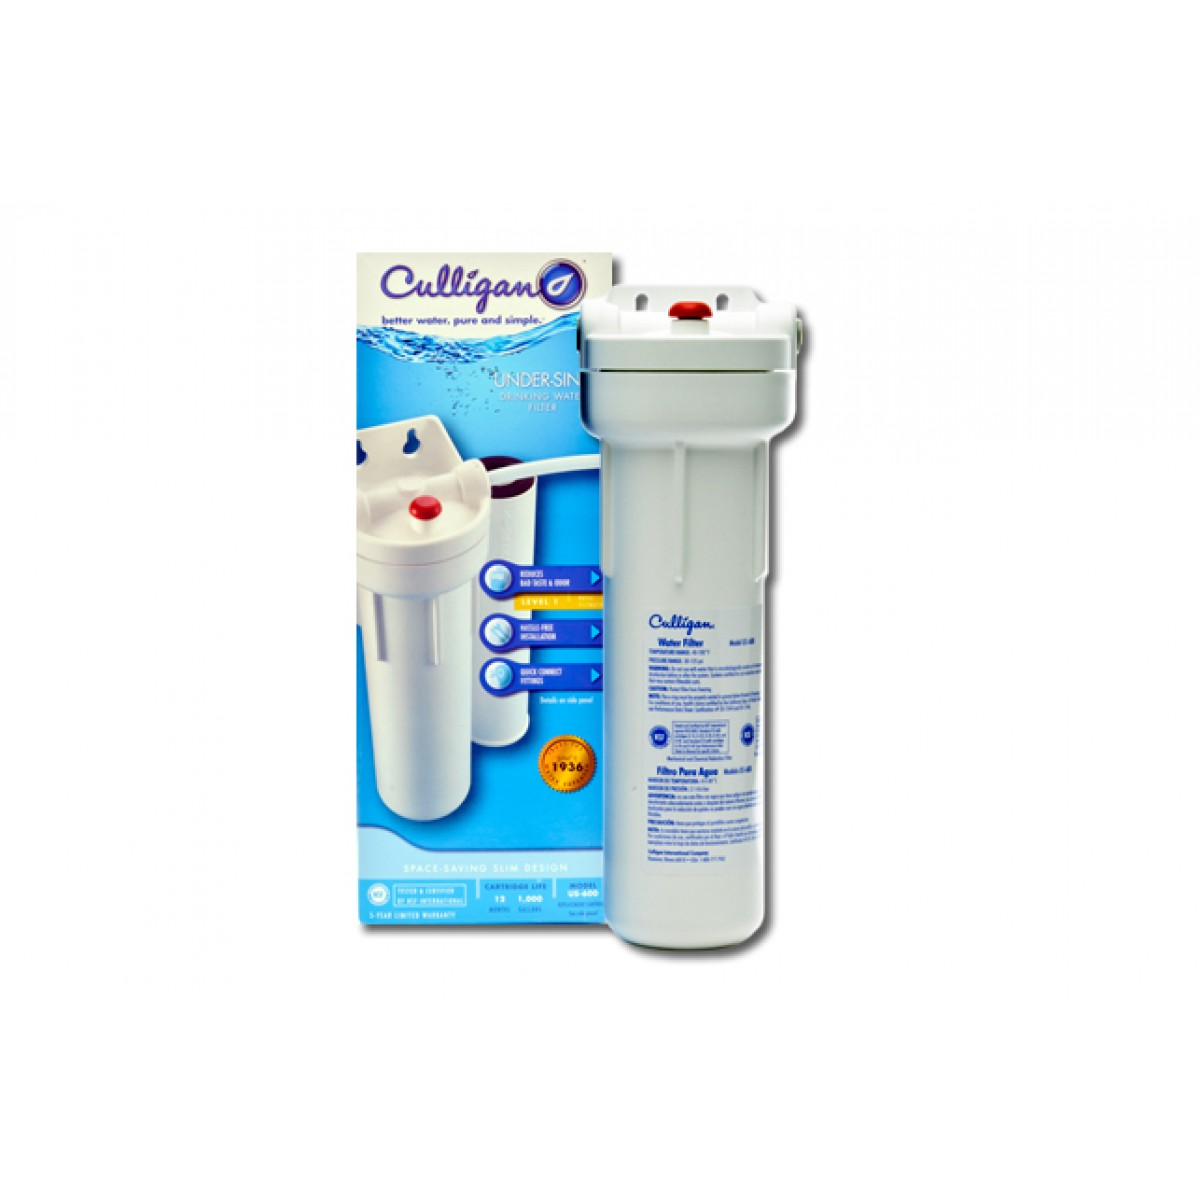 Us 600 Culligan Slim Undersink Filter System